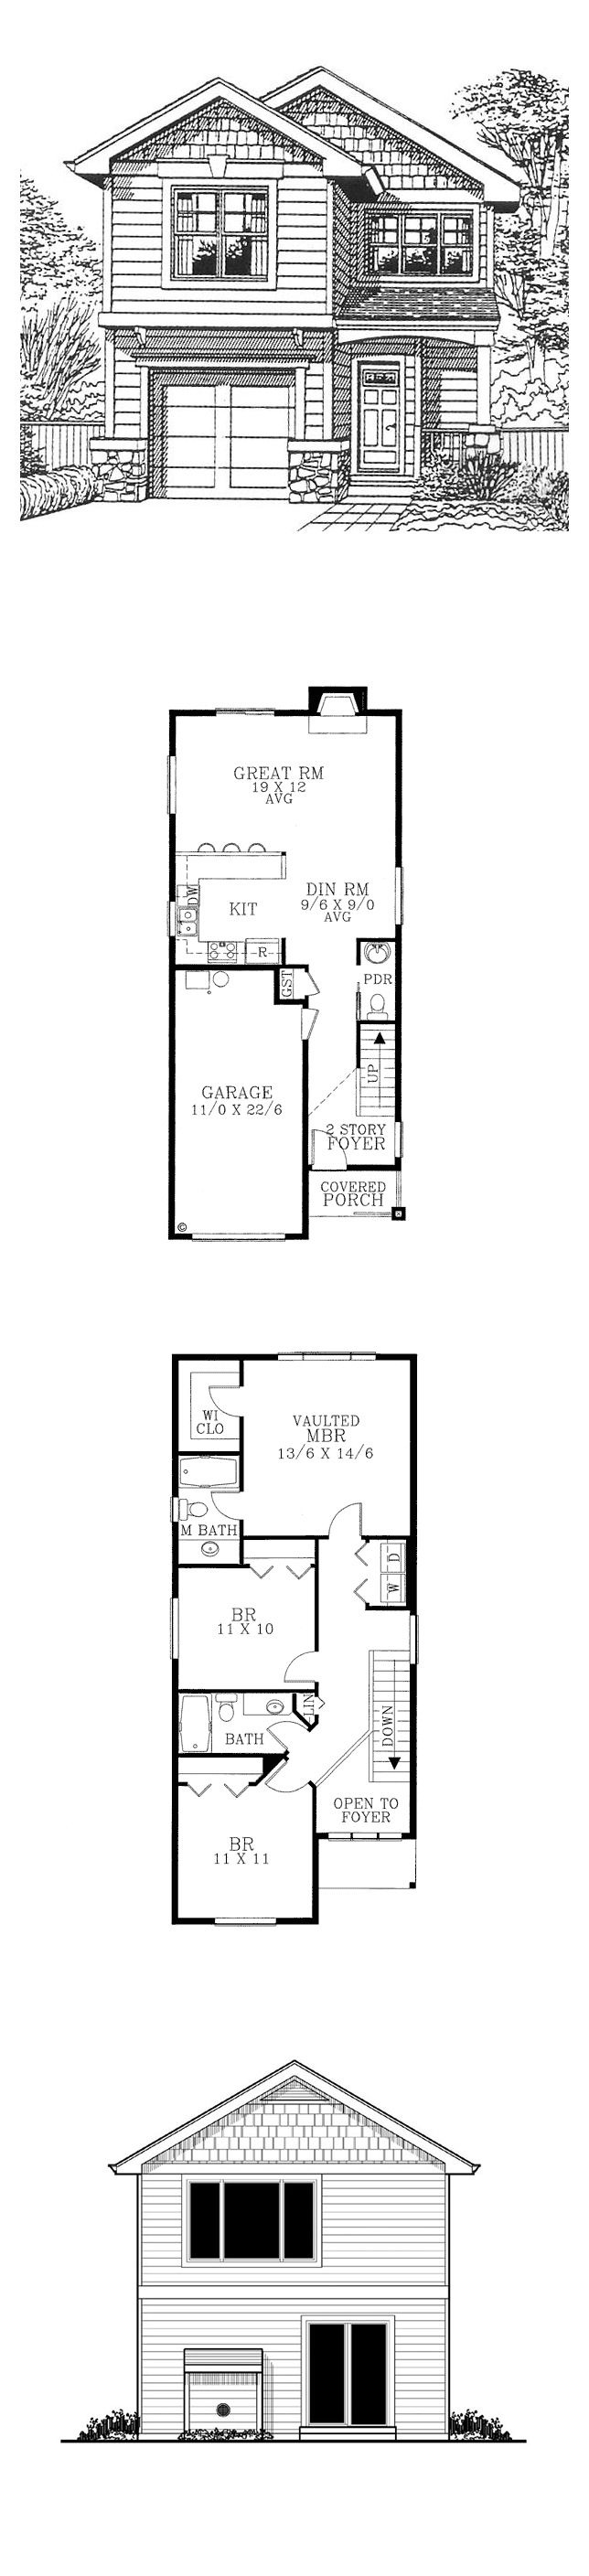 garage plan 50625 sims househouse floor planssmall 3 bedroom - Small 3 Bedroom House Plans